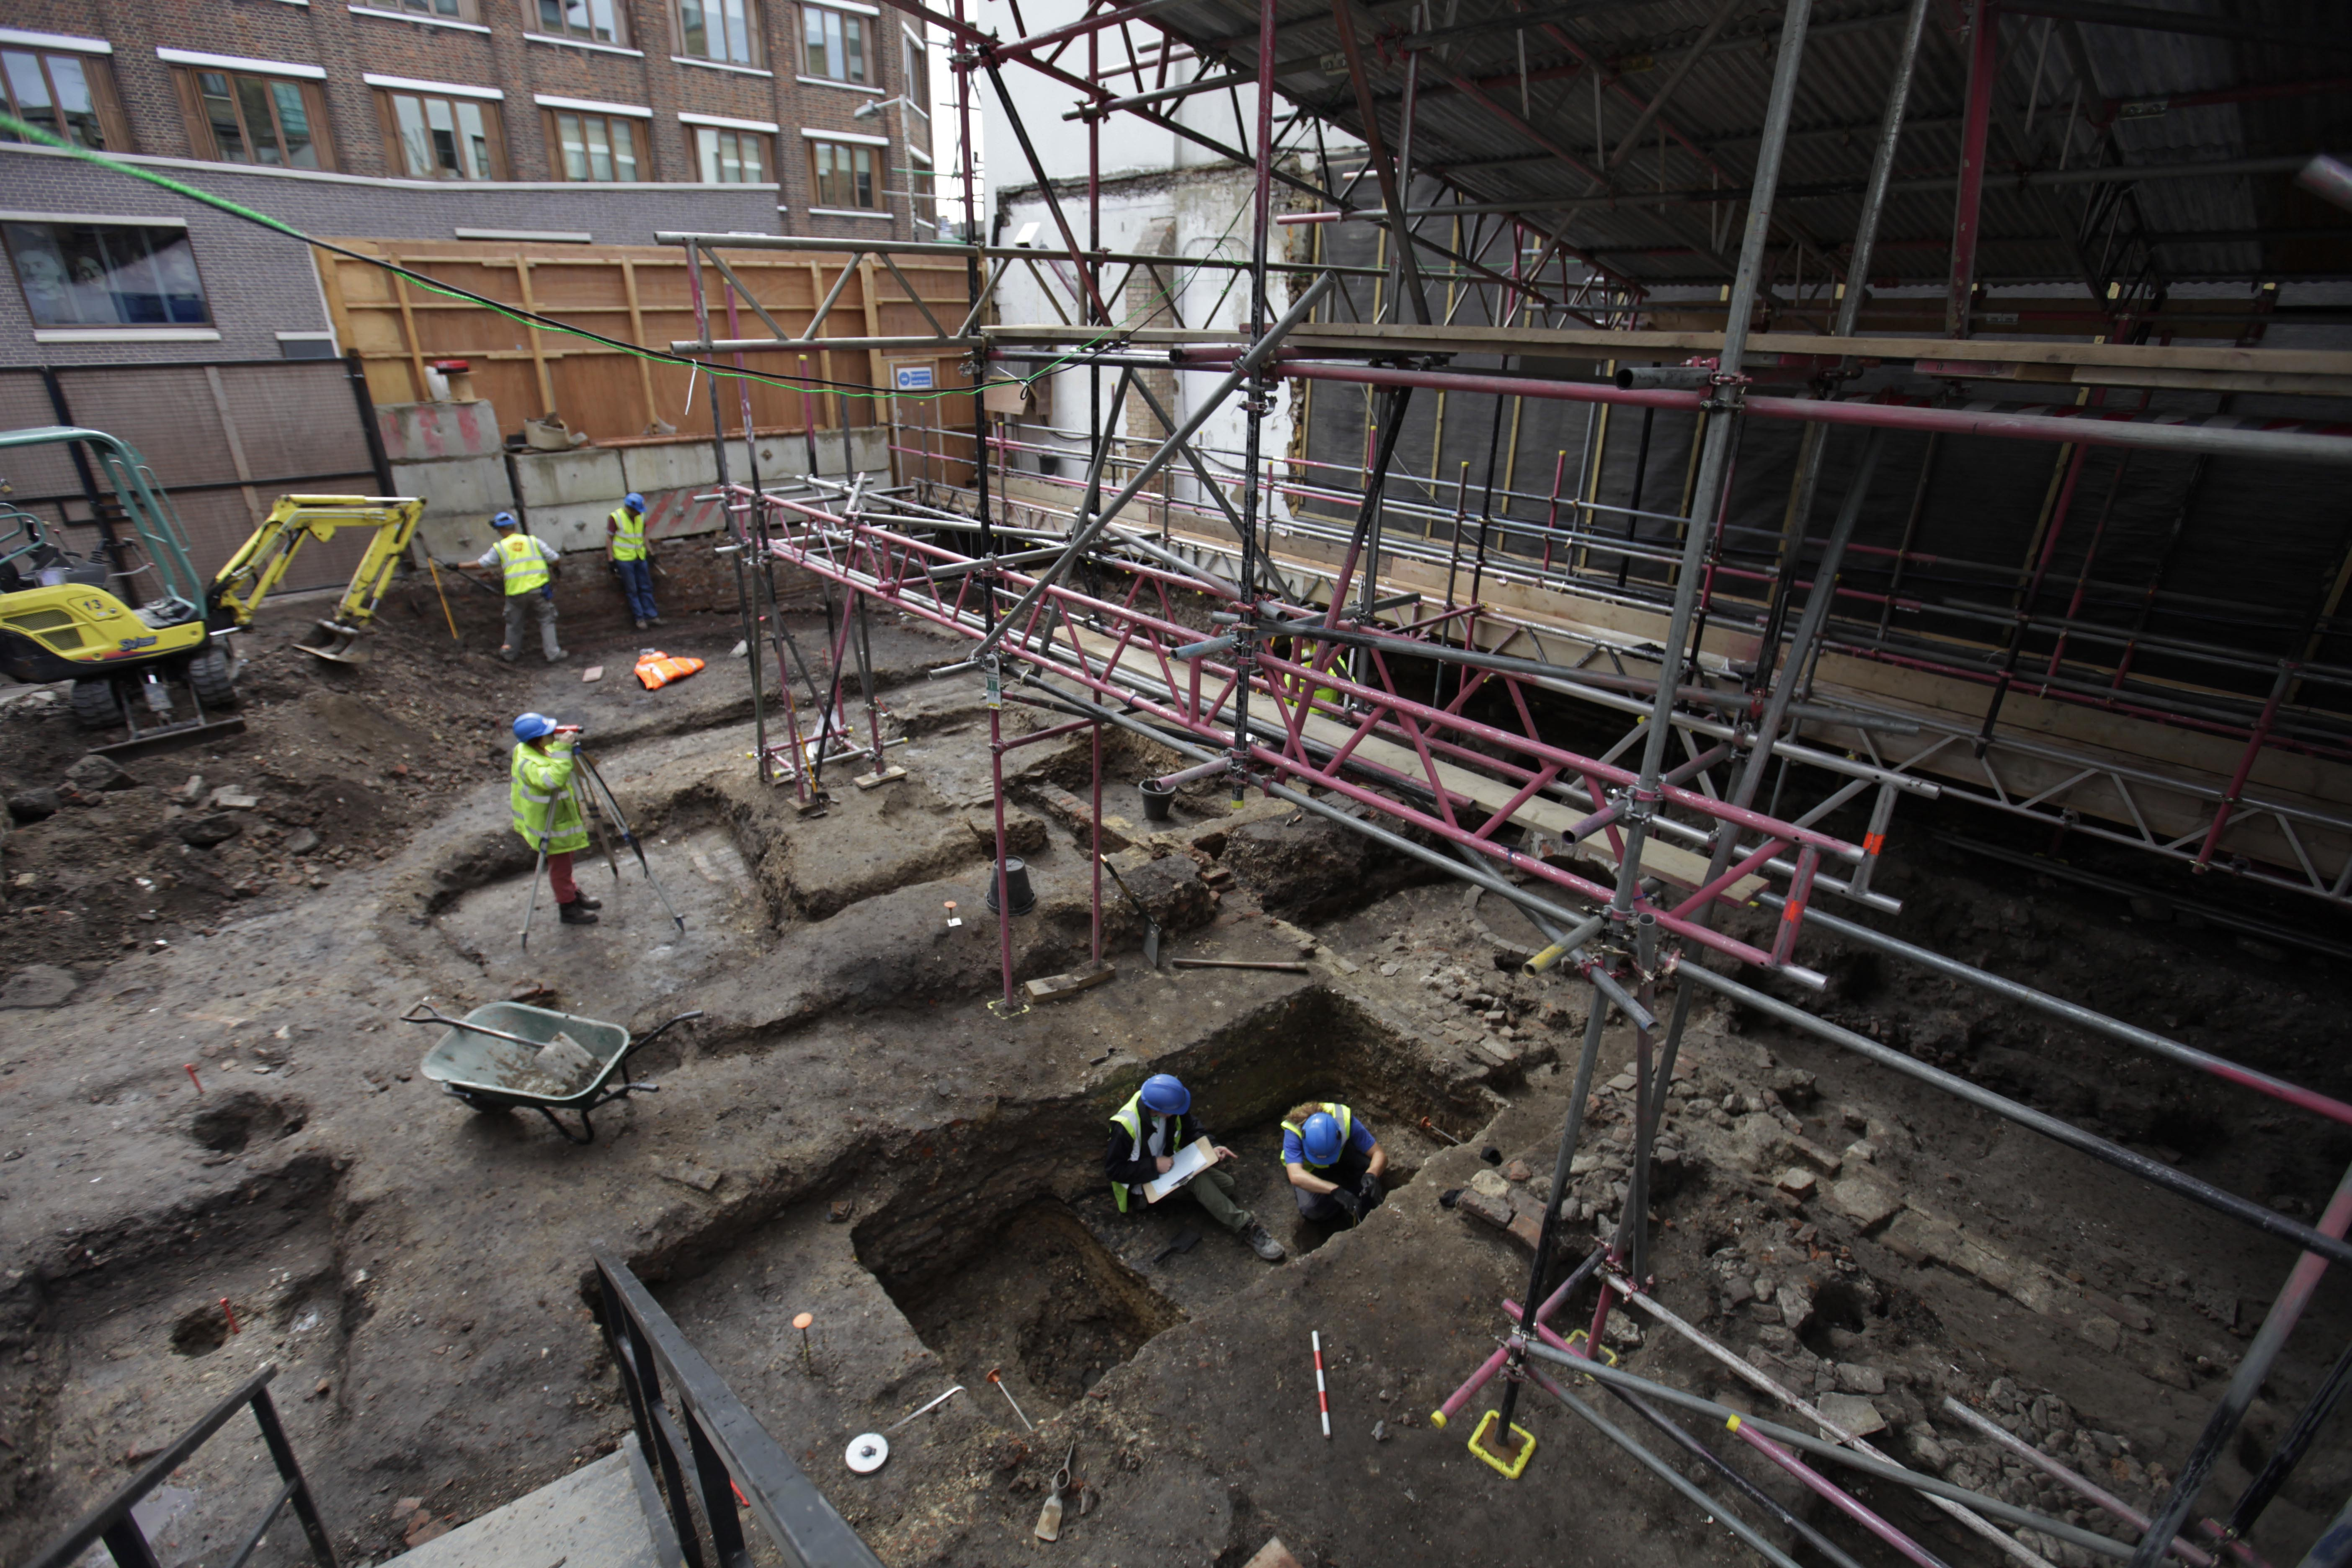 Archaeologists and workers work on an excavation site of London's first theater on July 15.